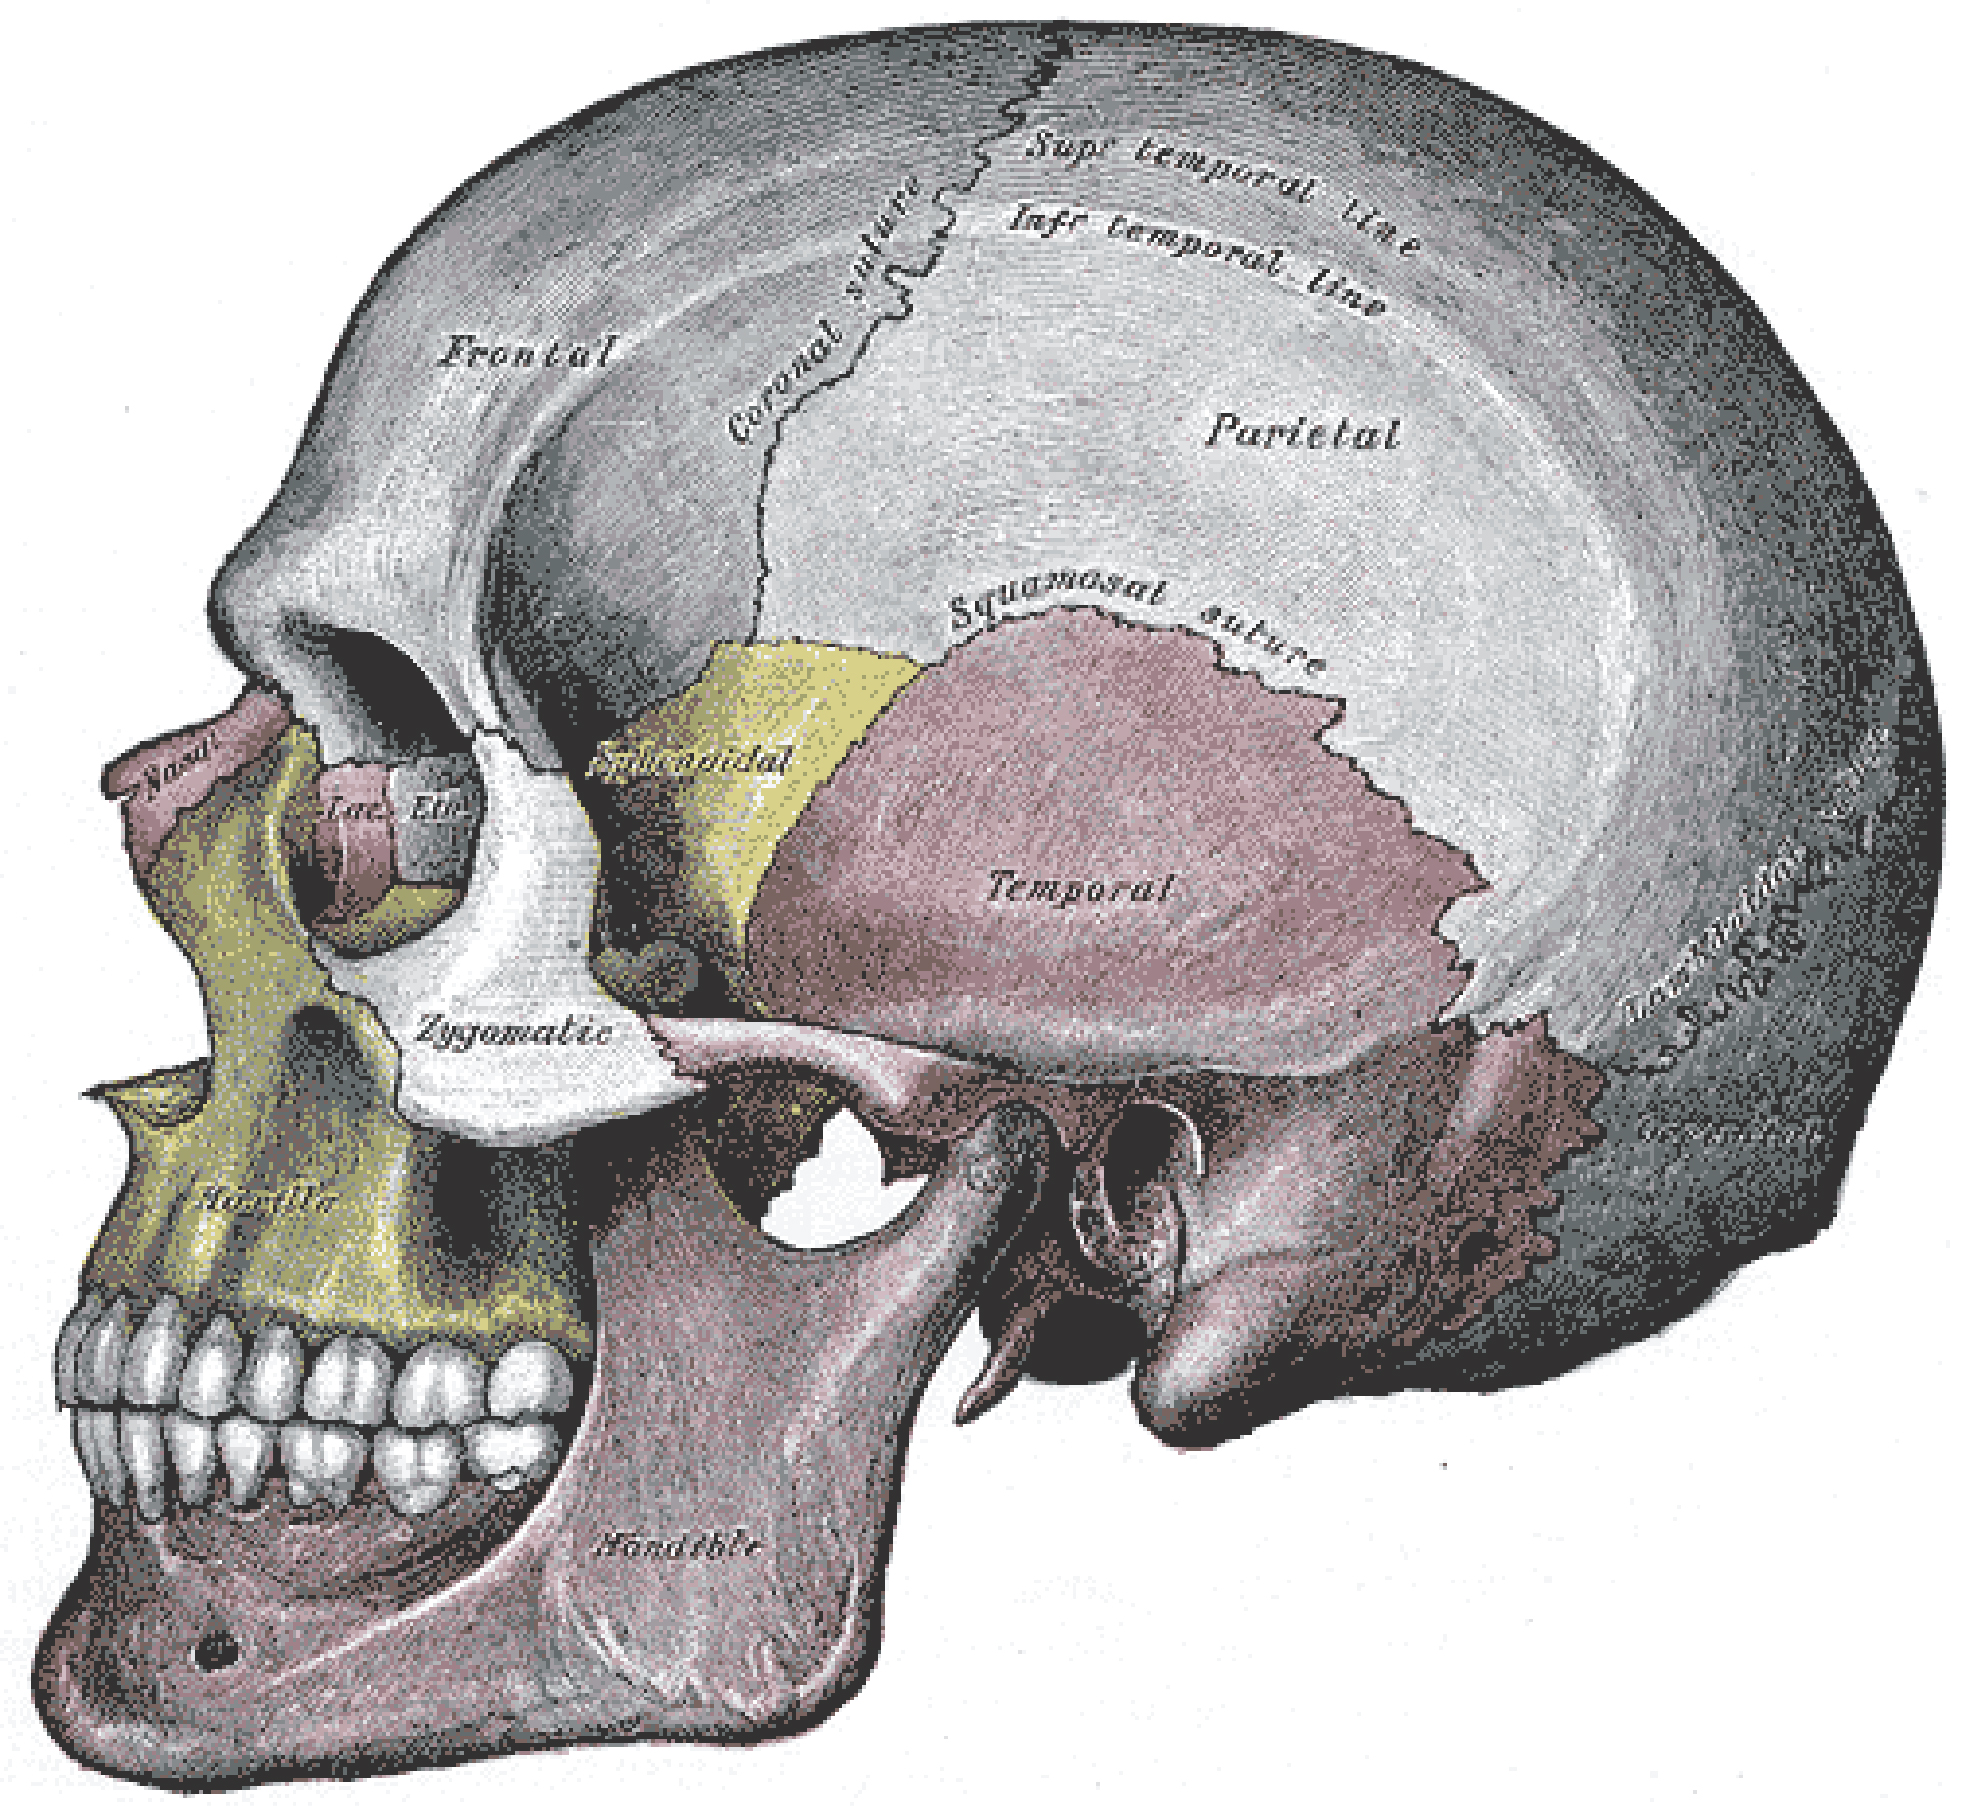 This image shows a side view of the human skull. The major parts of the cell are labeled.